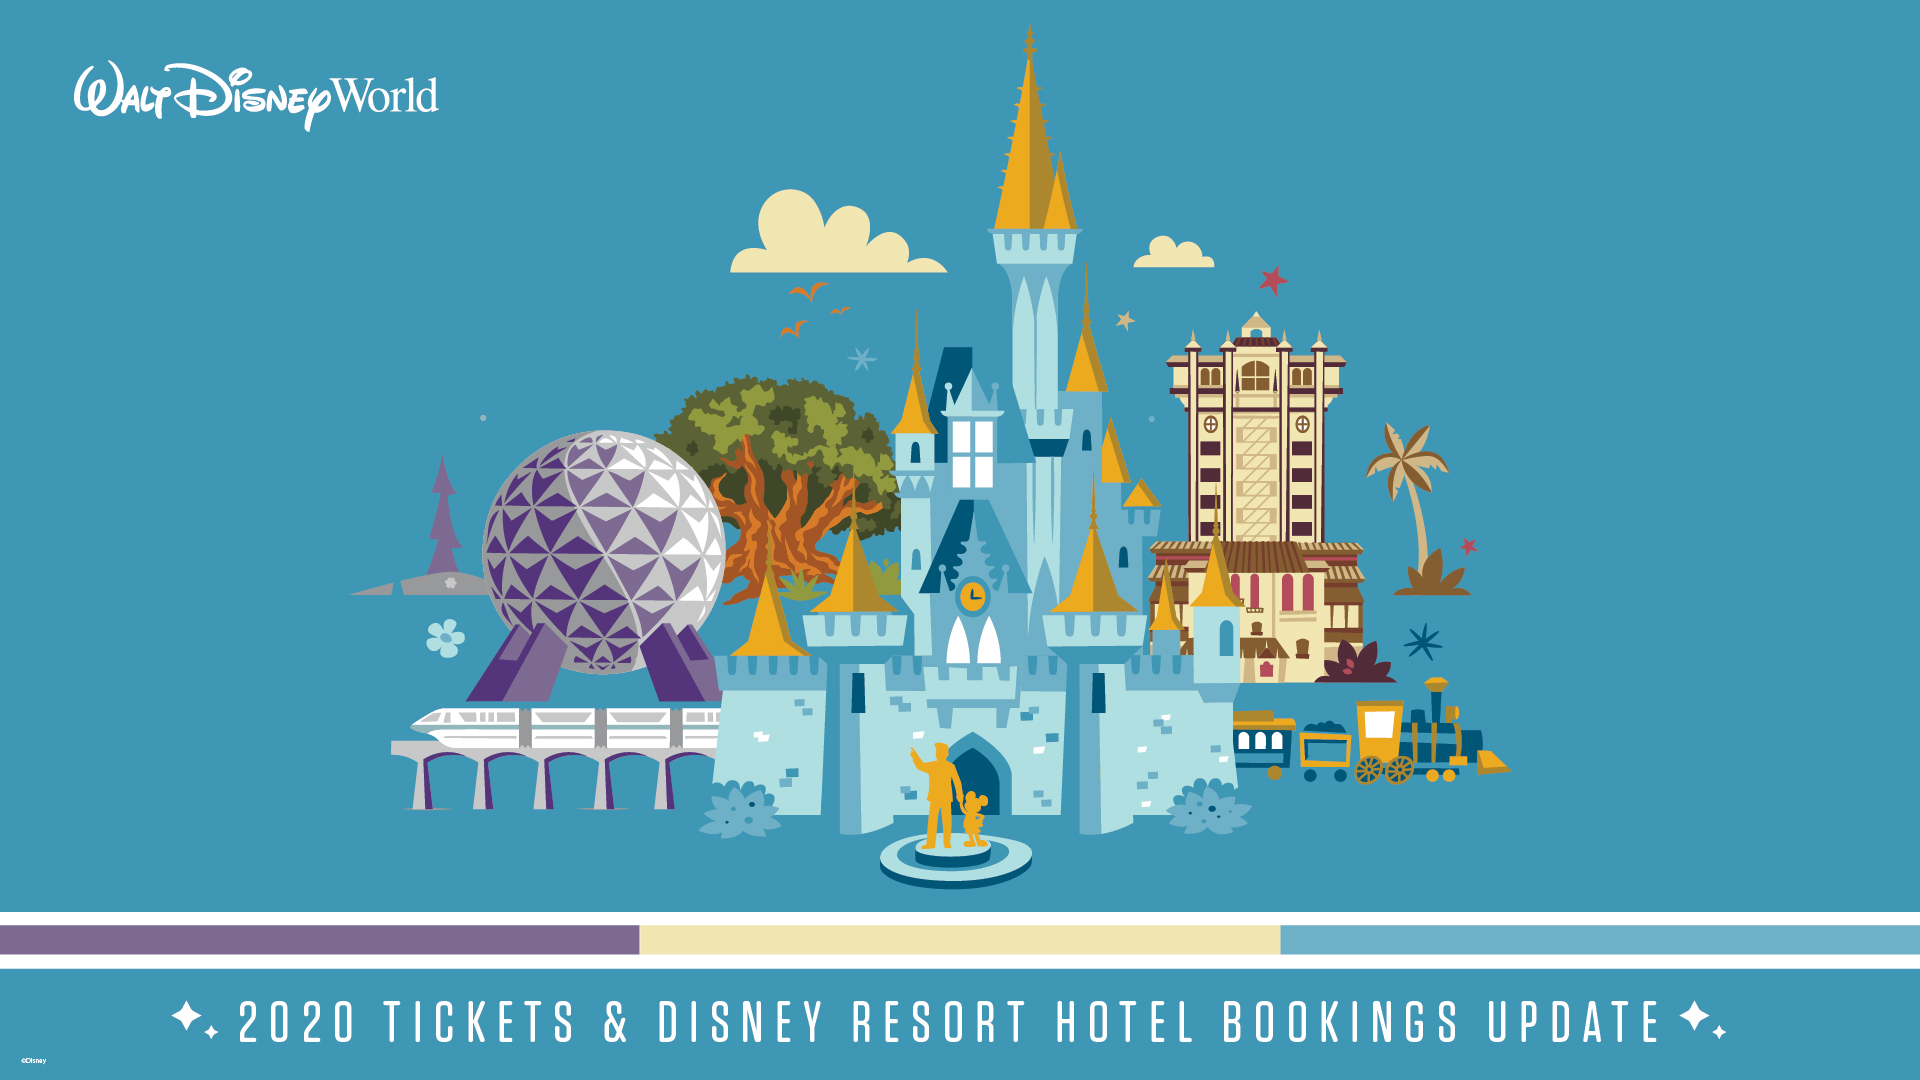 Walt Disney World Resort 2020 Theme Park Tickets and Disney Resort Hotel Bookings Now Available